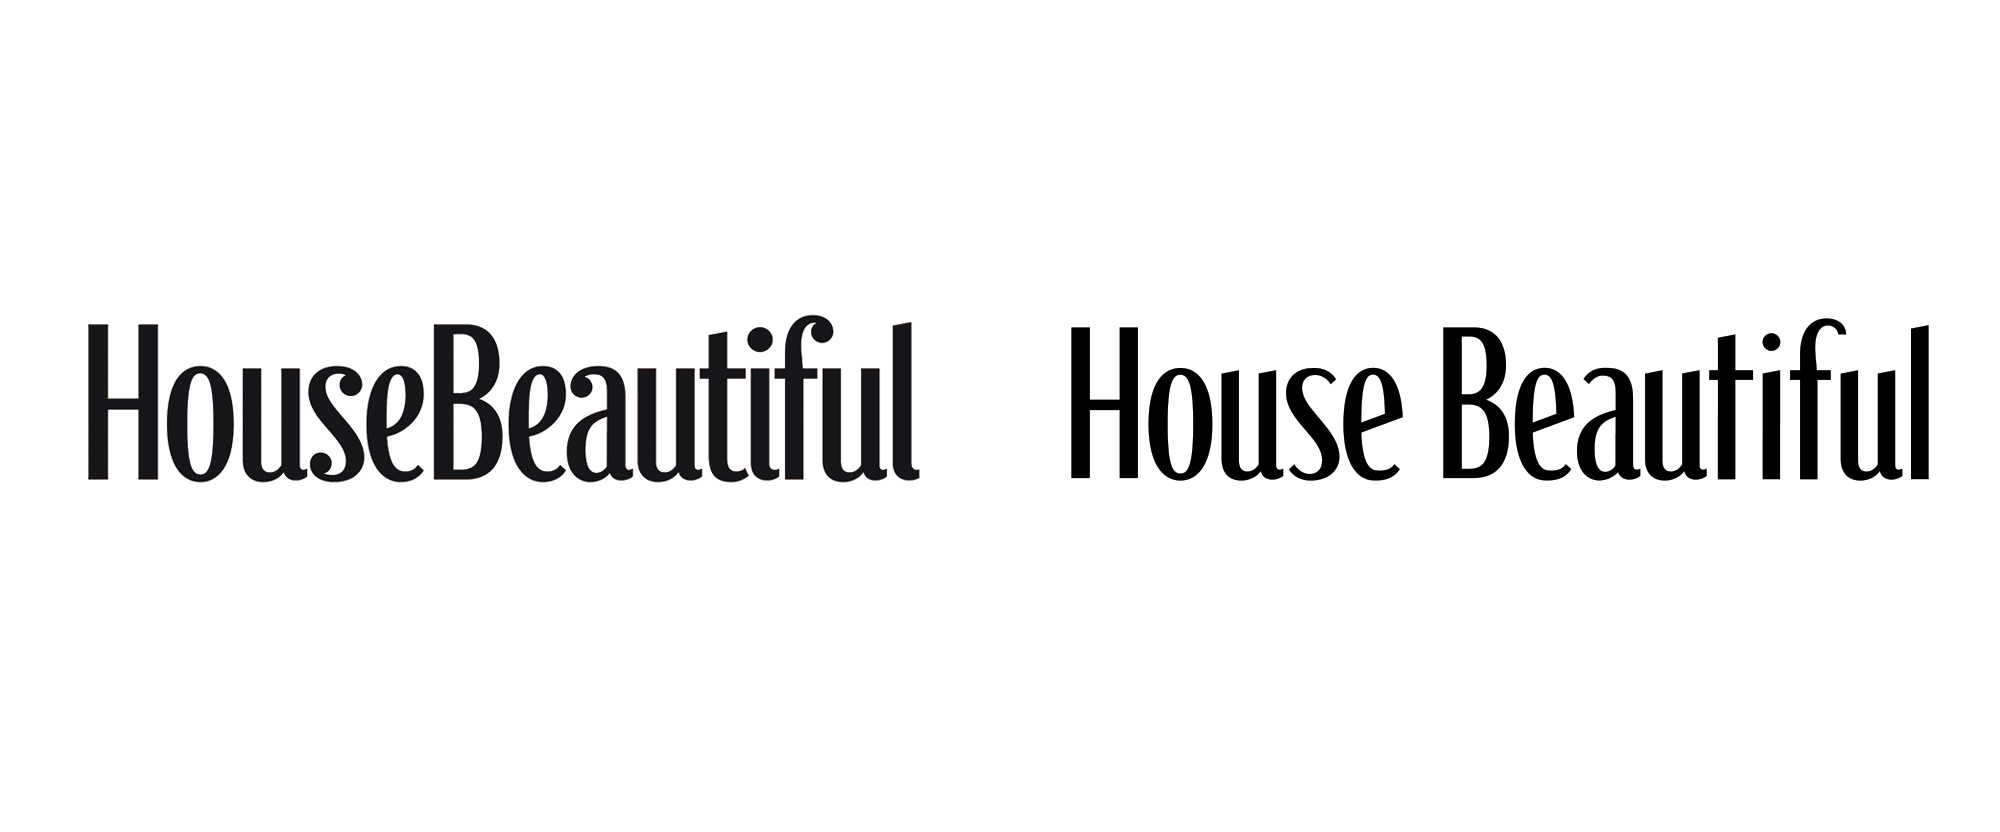 New Logo for House Beautiful done In-house